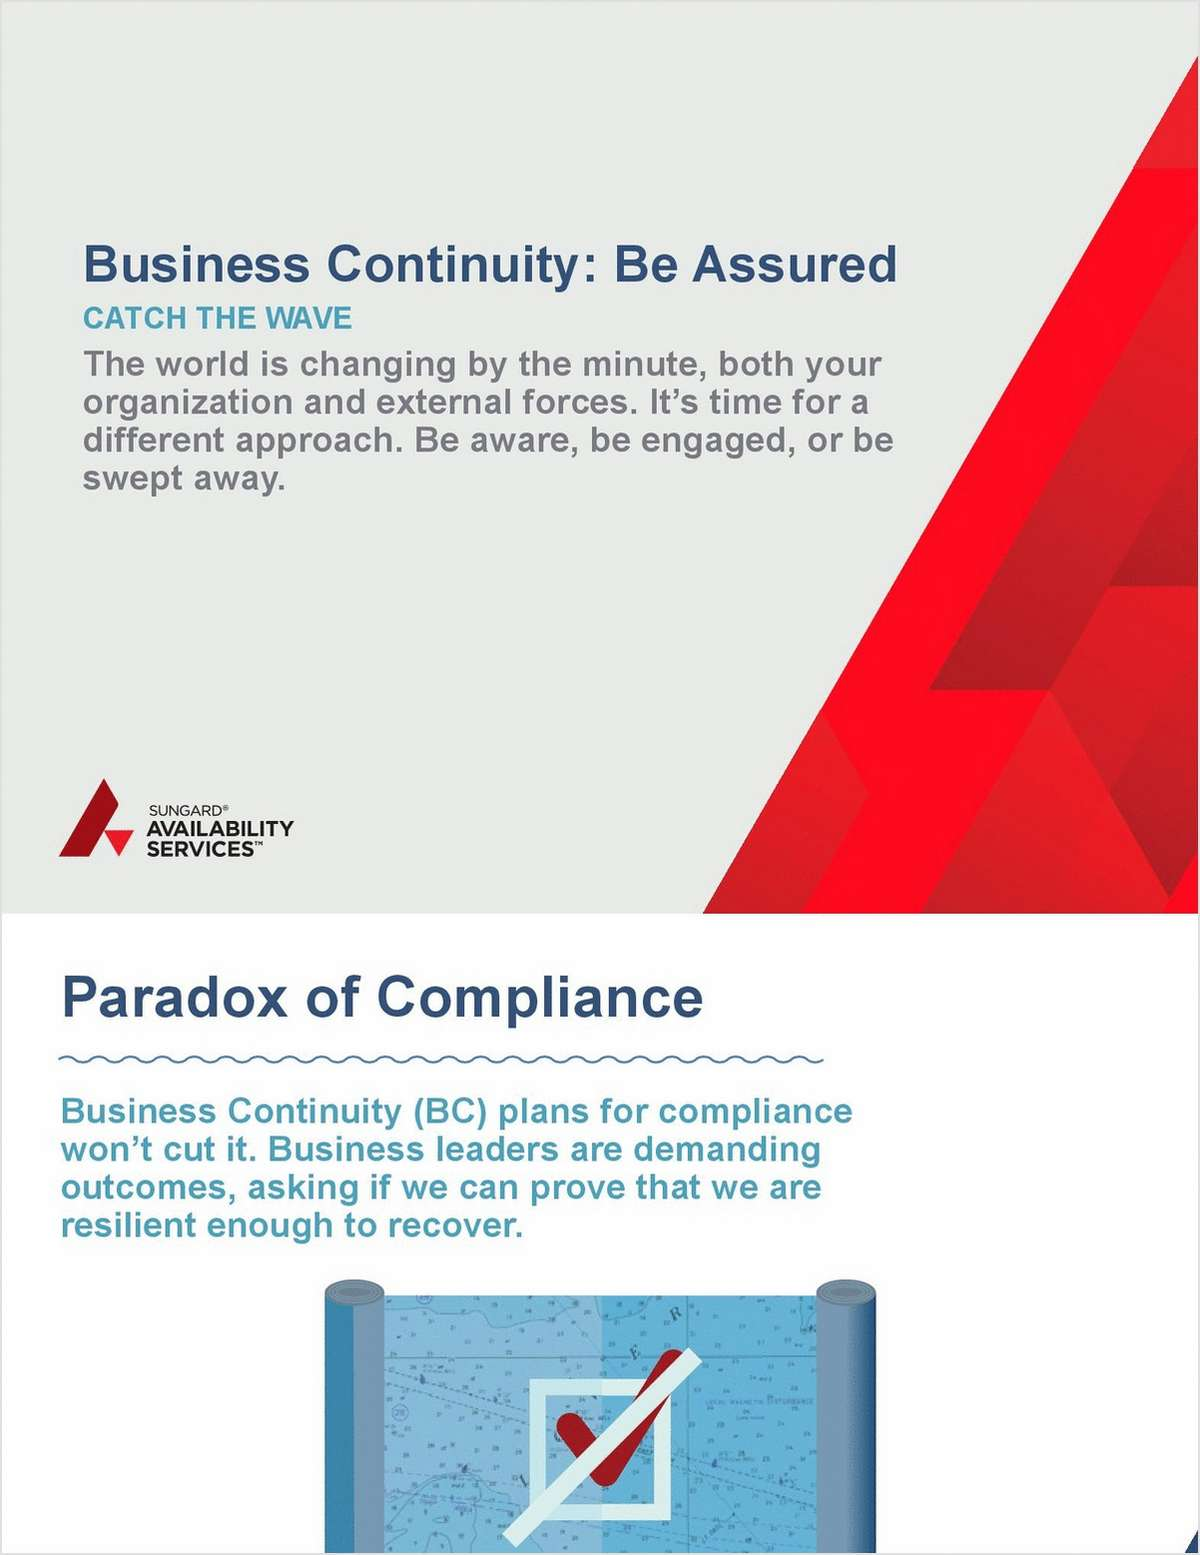 Are Your Business Continuity Plans Up To Par for Today's Changing World?